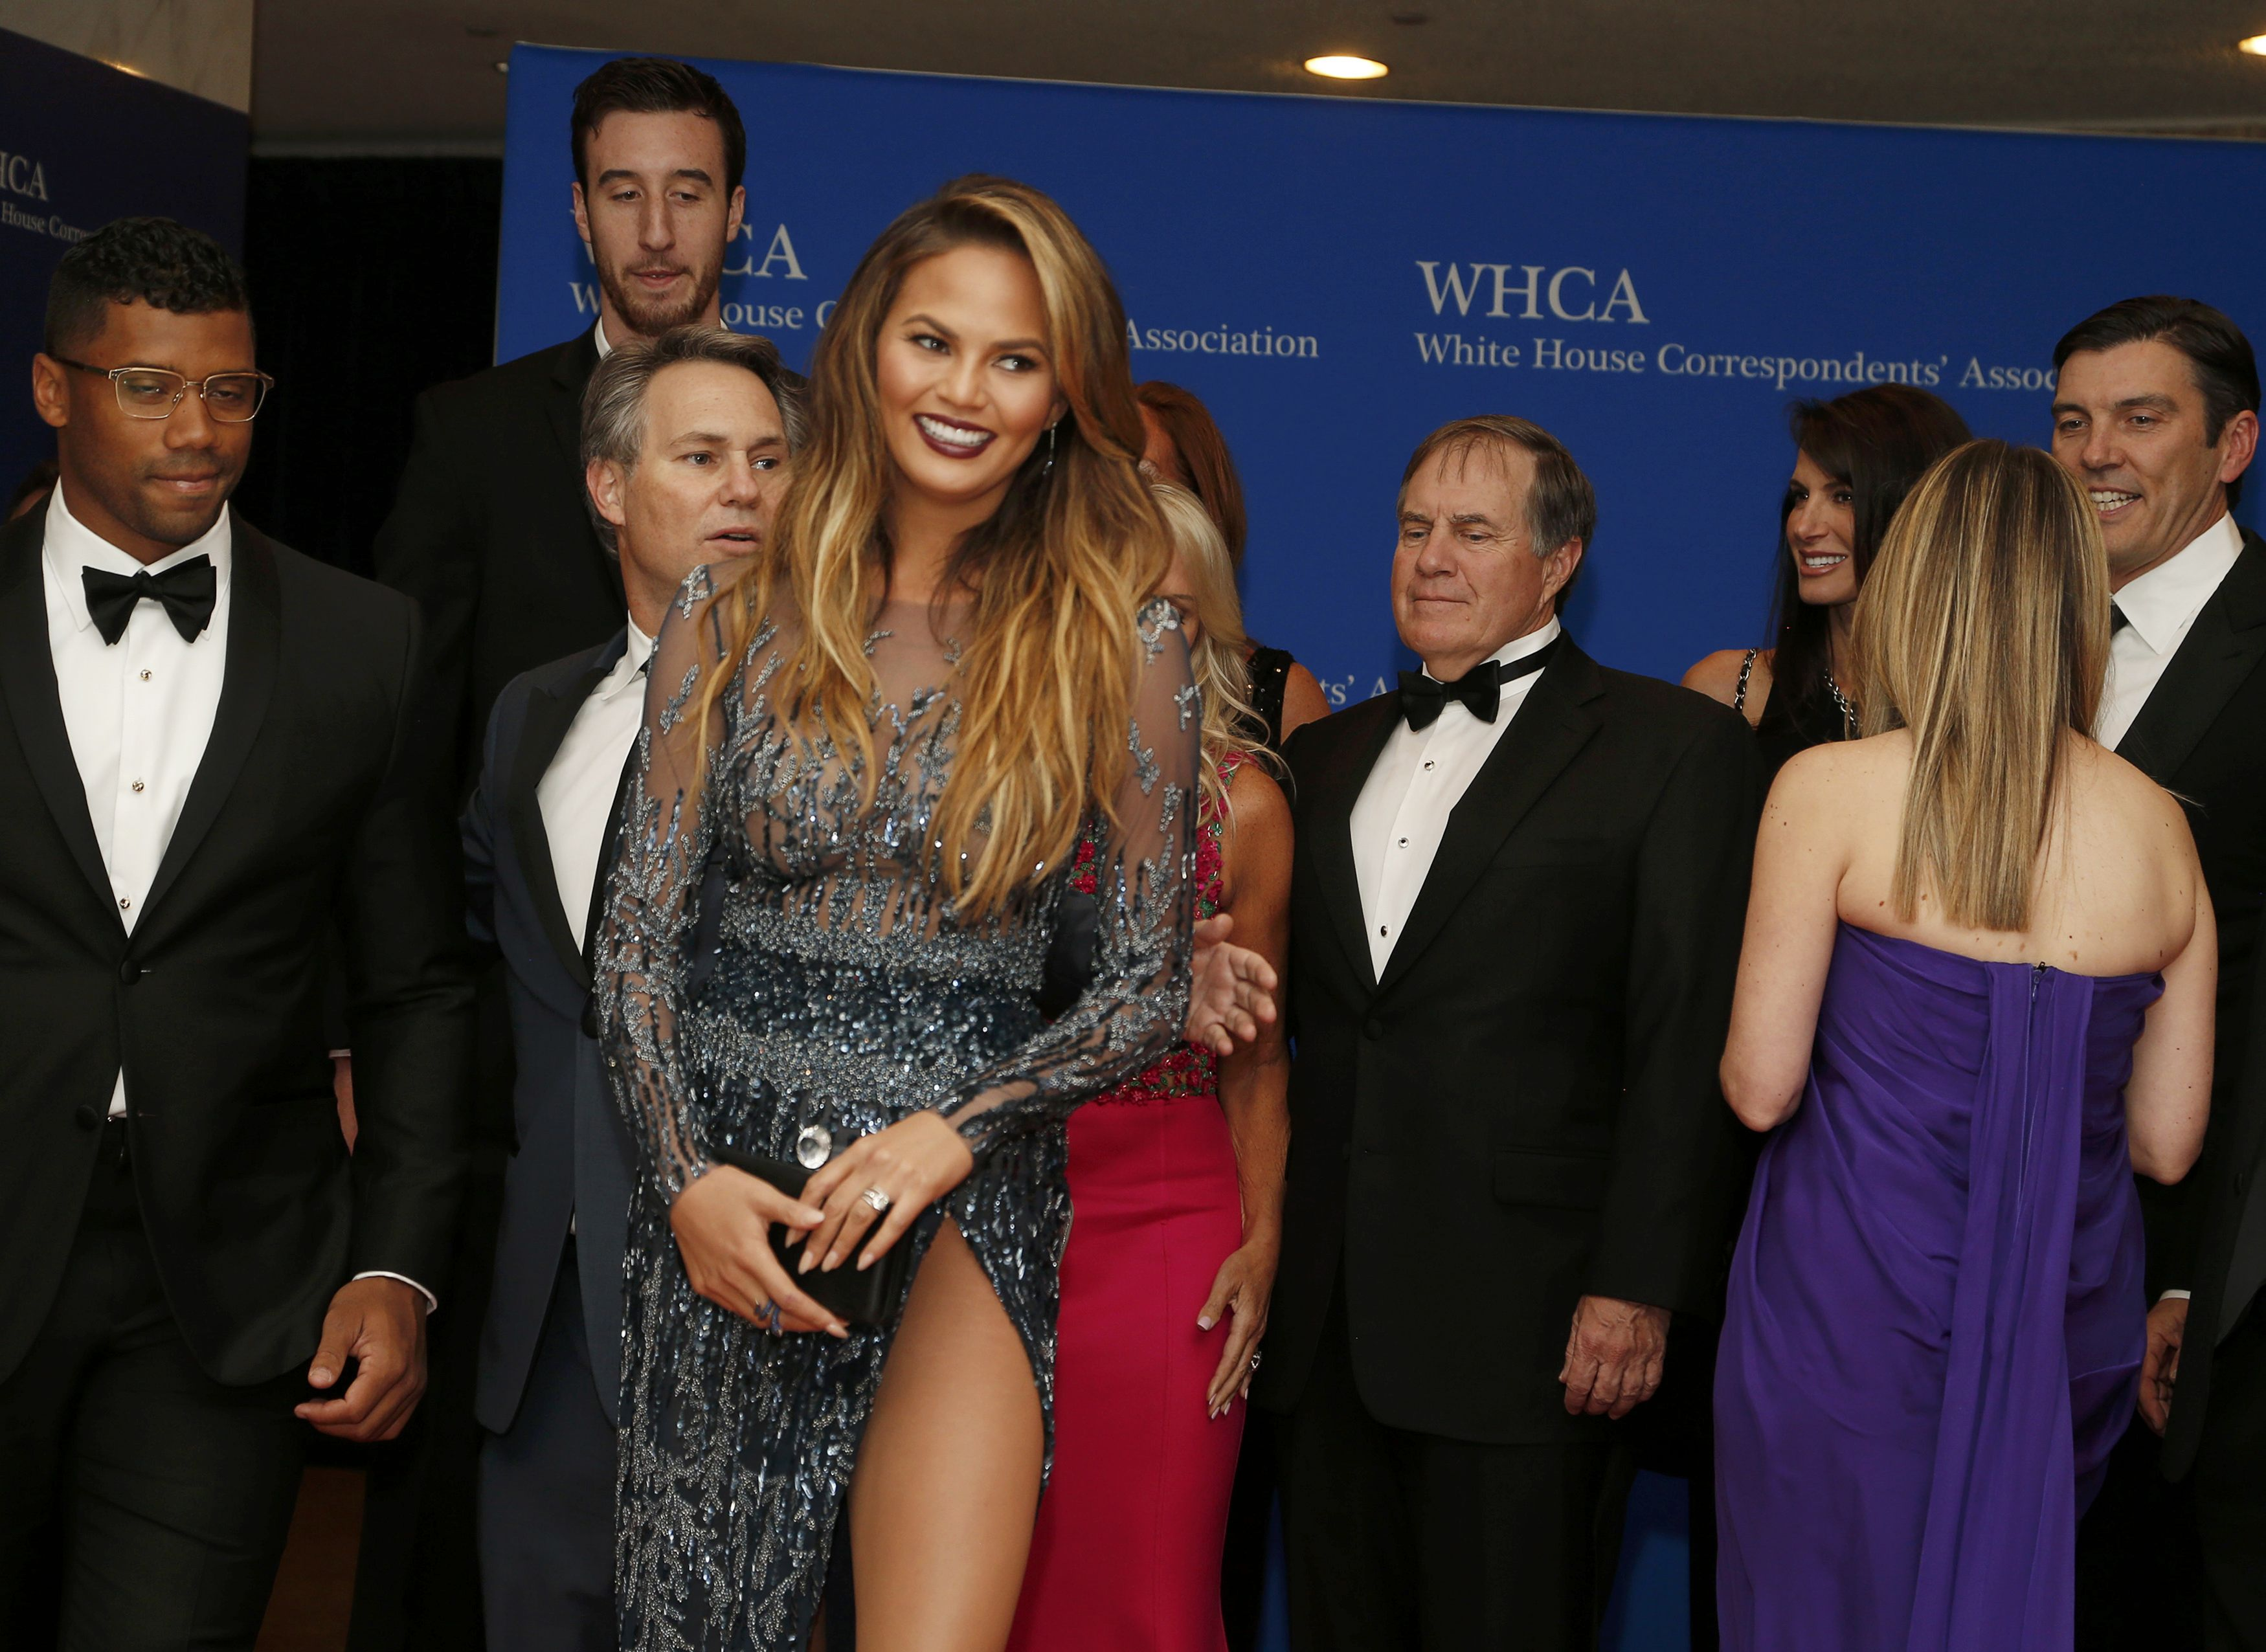 Photos from the red carpet at White House Correspondents' Dinner